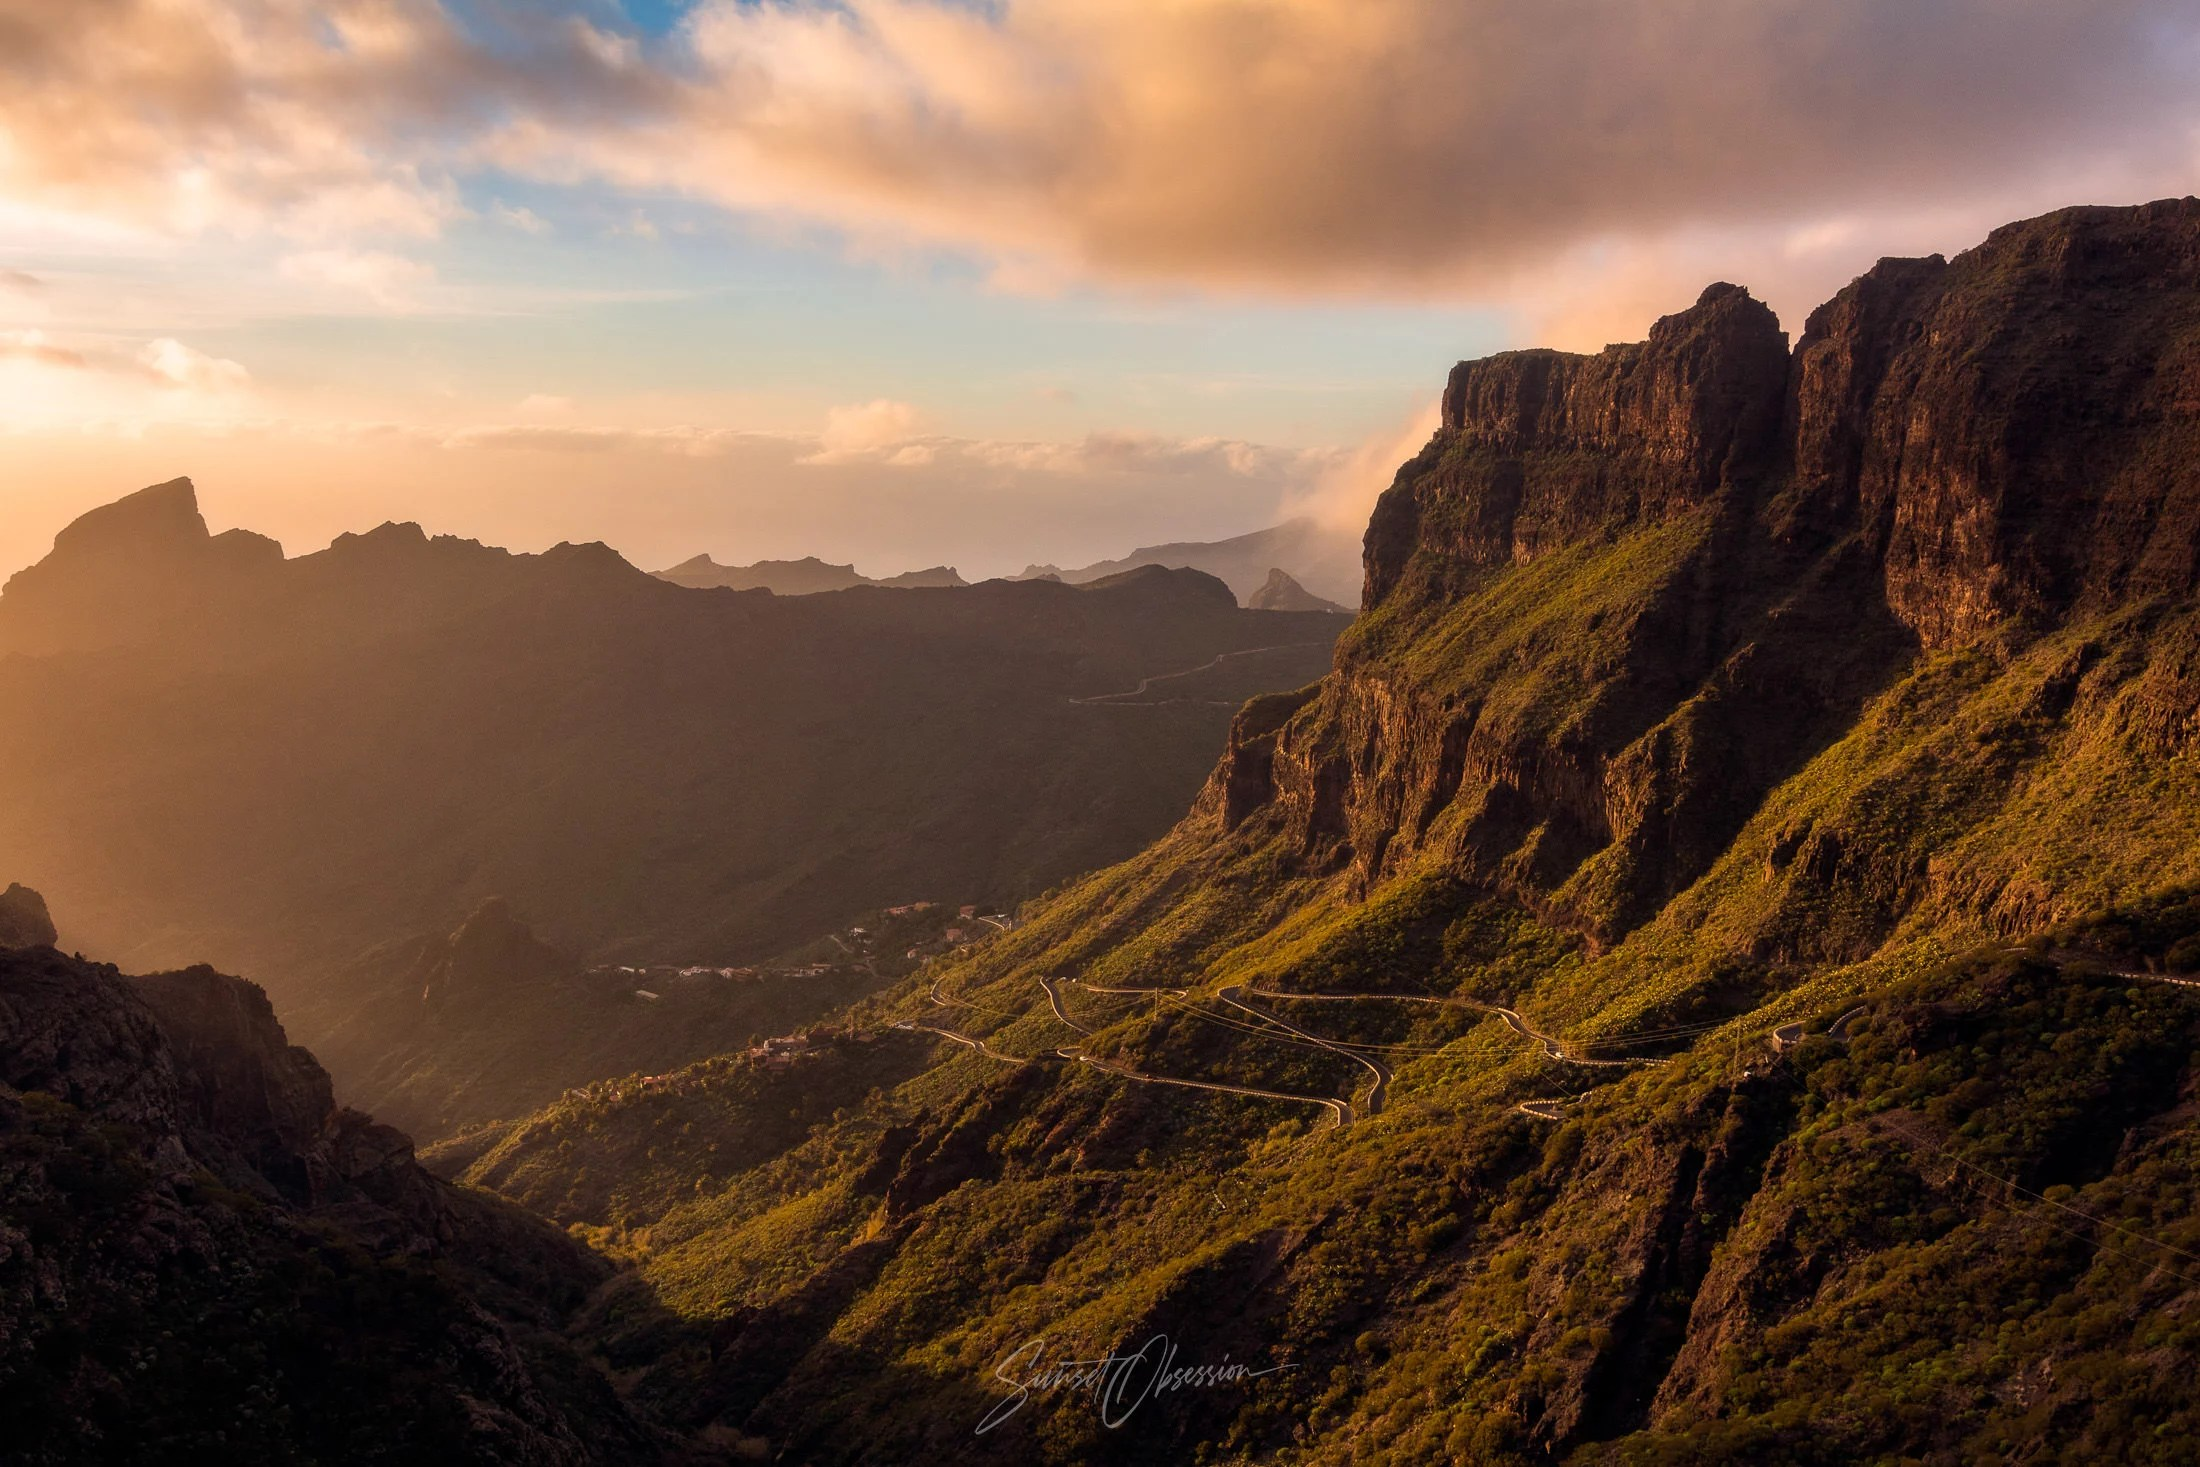 Soft afternoon light in the Masca Gorge, Tenerife, Canary Islands